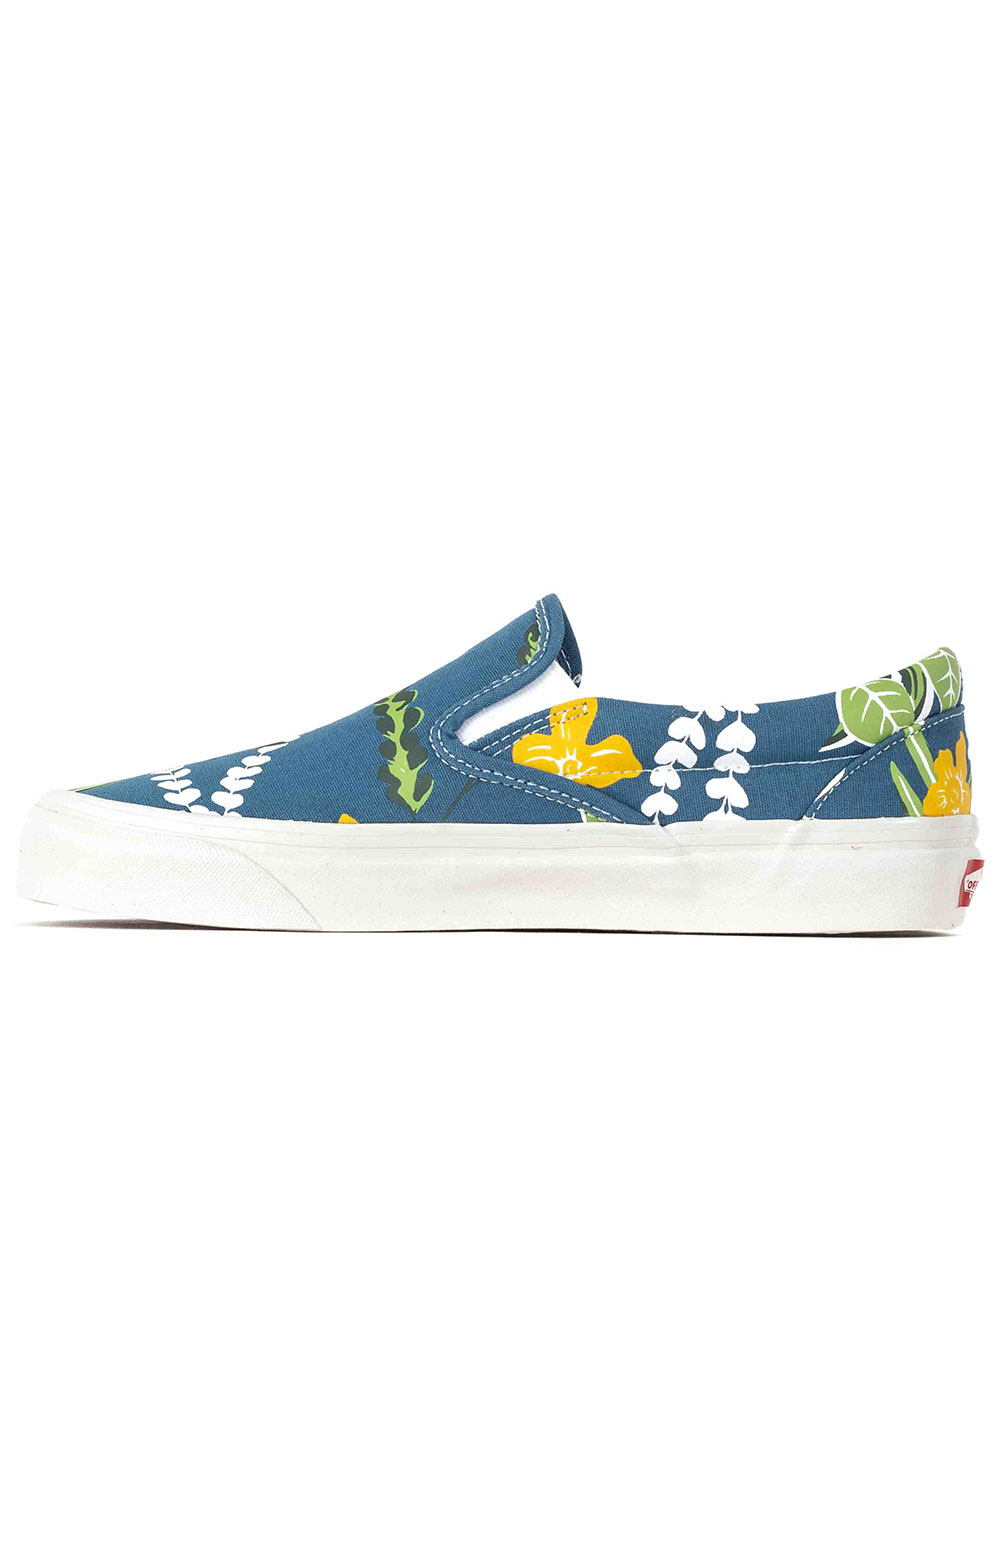 (JEXWVQ) Anaheim Factory Classic Slip-On 98 DX Shoes - OG Aloha Navy 4